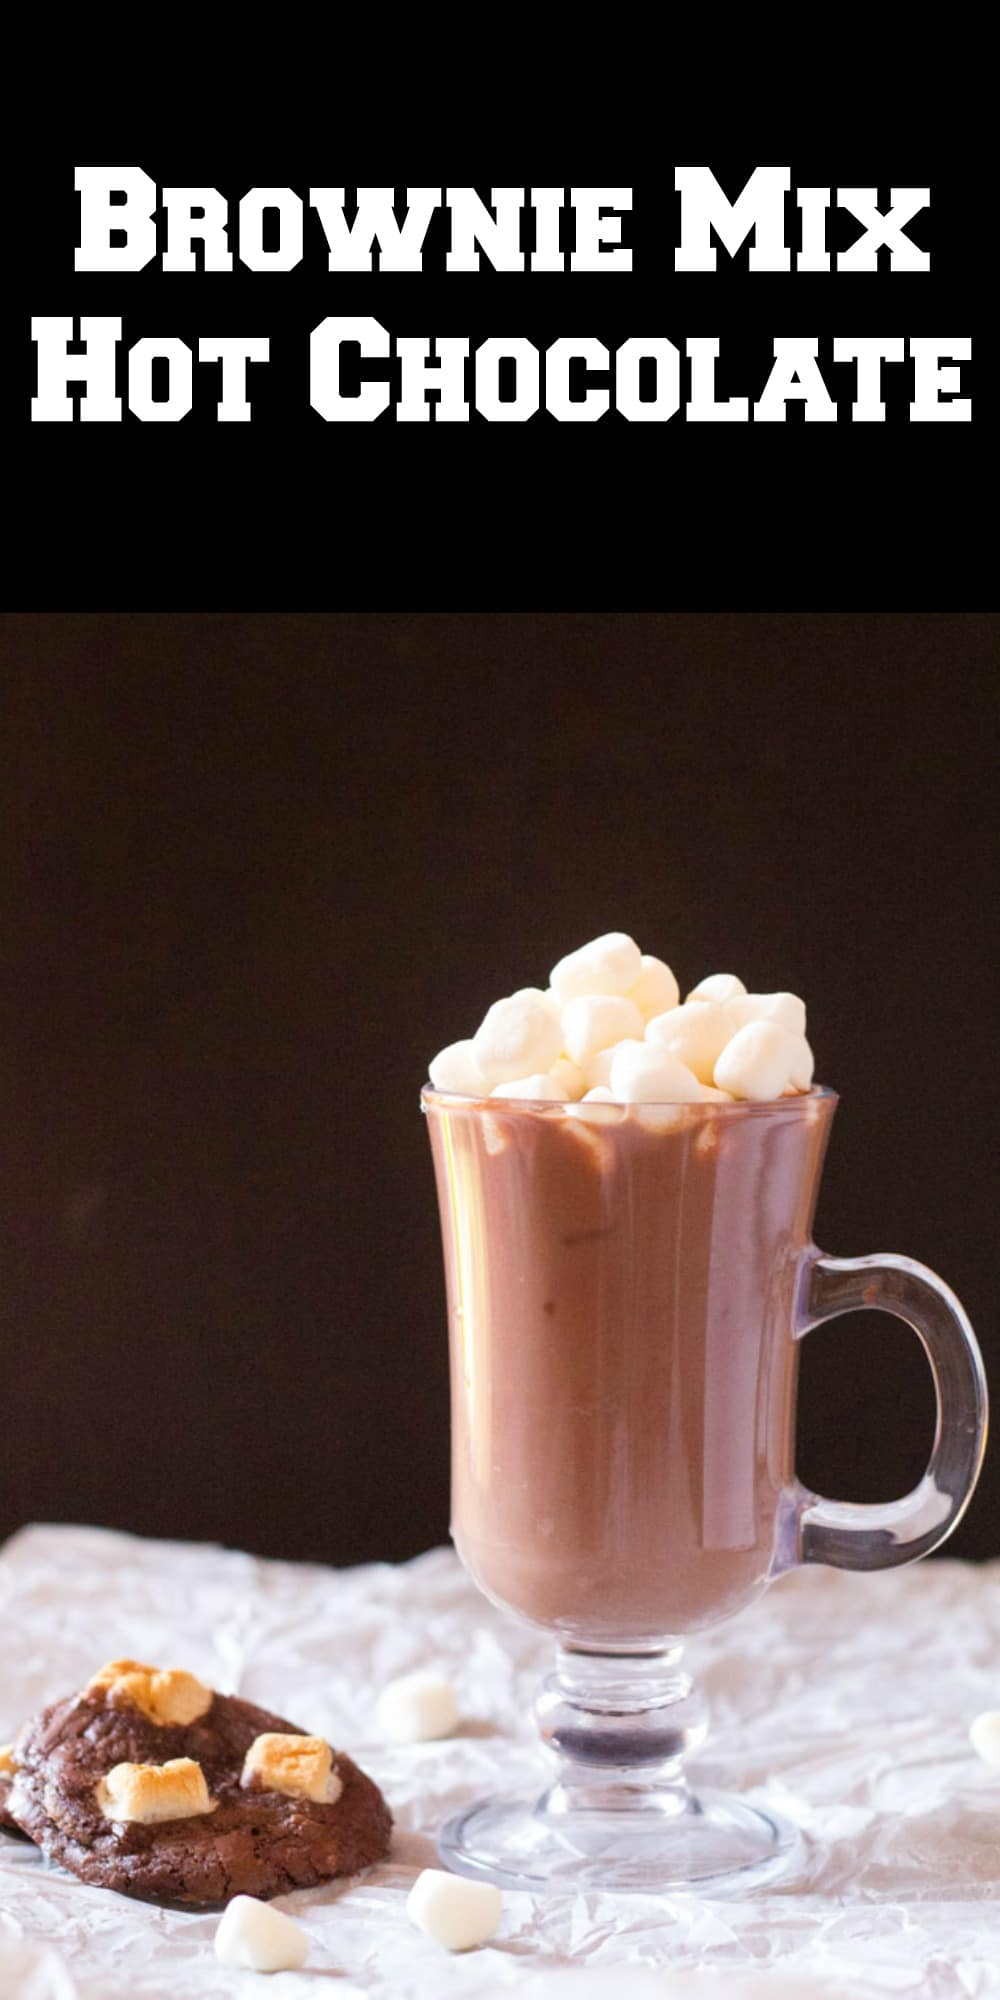 Brownie Mix Hot Chocolate